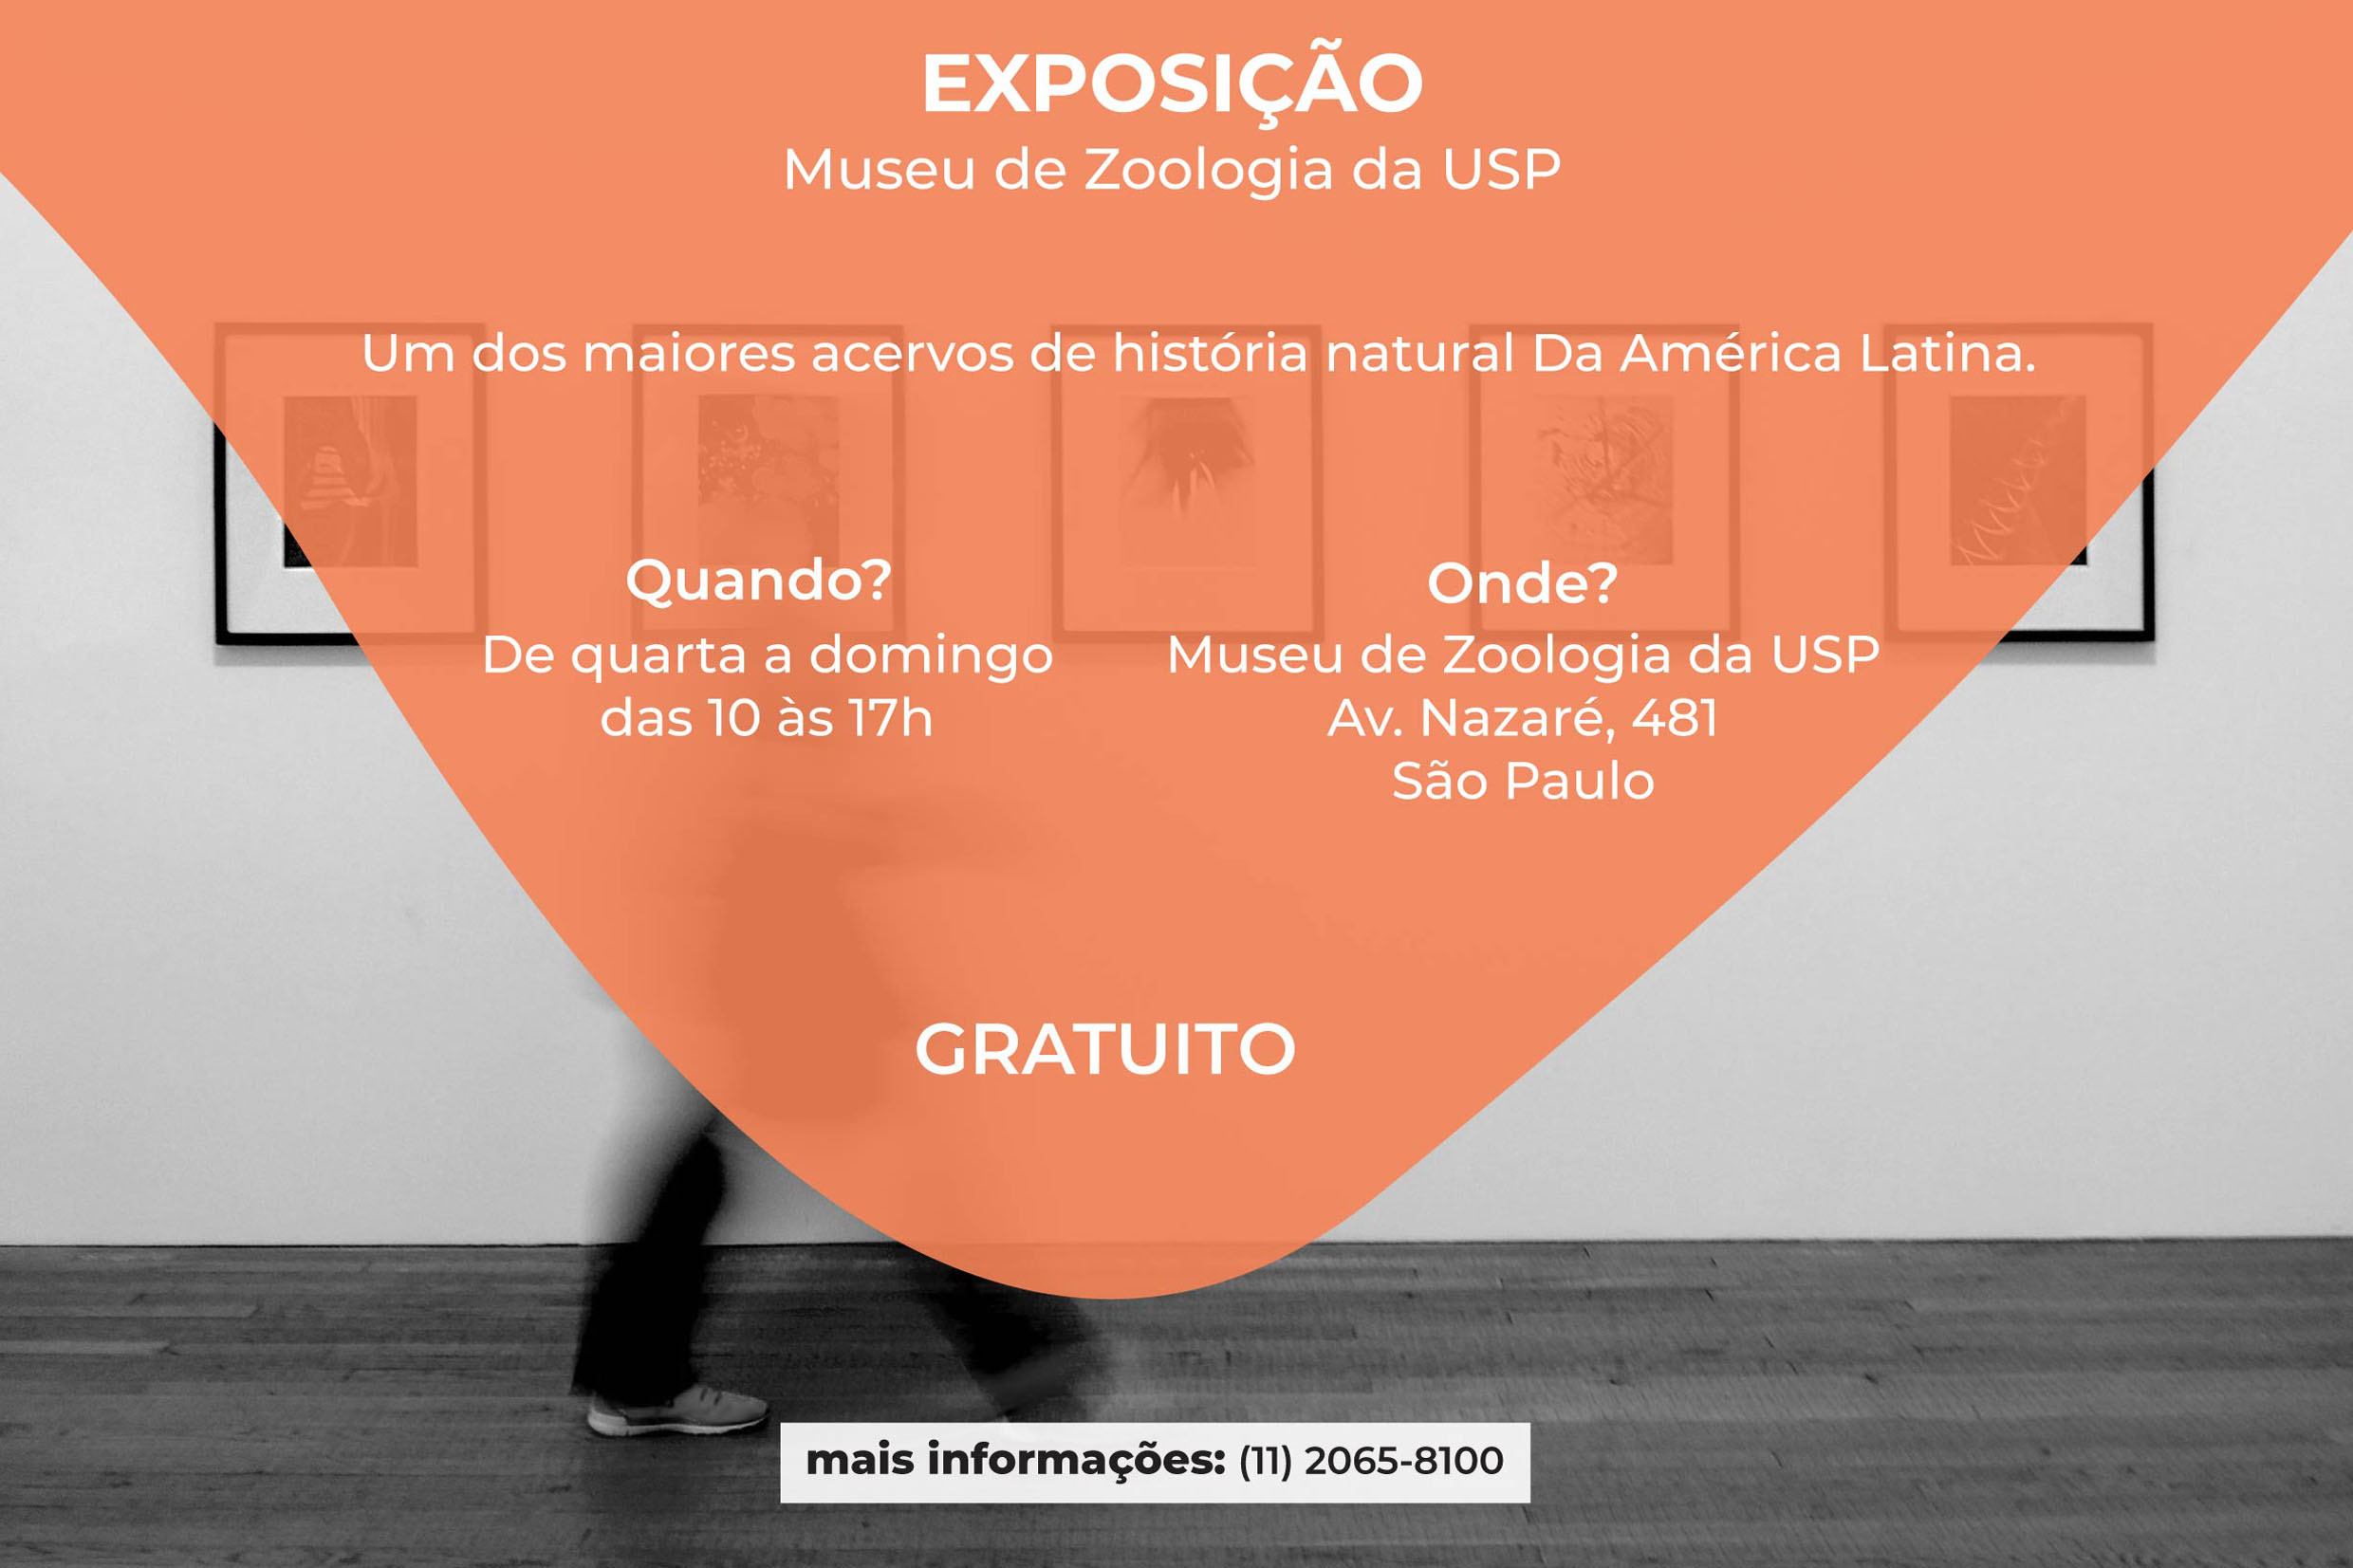 Agência Alesp<a style='float:right' href='https://www3.al.sp.gov.br/repositorio/noticia/N-07-2019/fg236867.jpg' target=_blank><img src='/_img/material-file-download-white.png' width='14px' alt='Clique para baixar a imagem'></a>